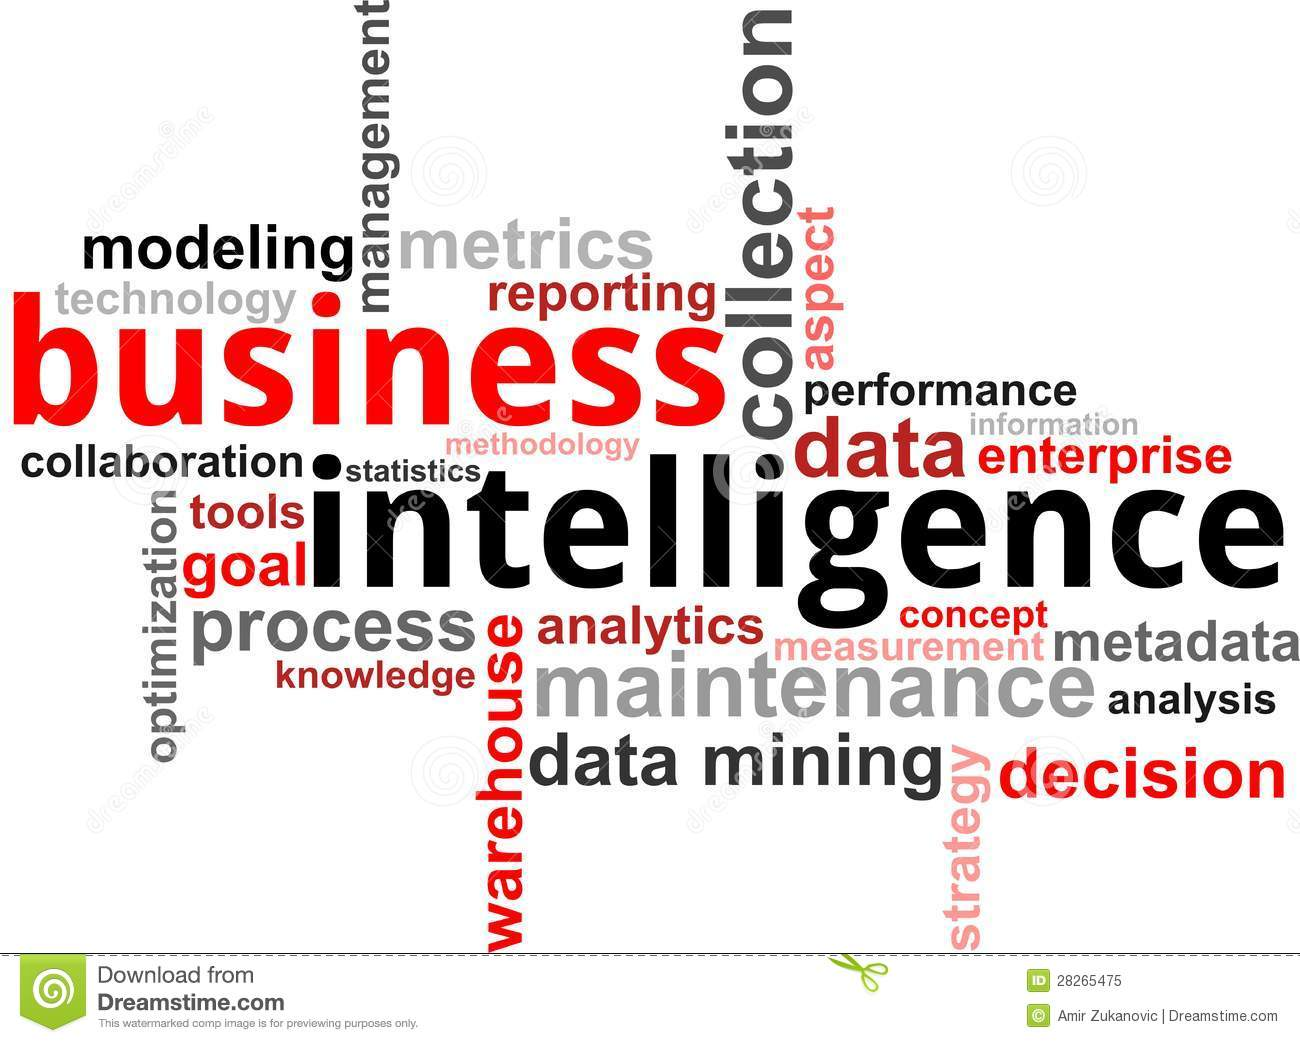 an analysis of the business components in active enterprise intelligence